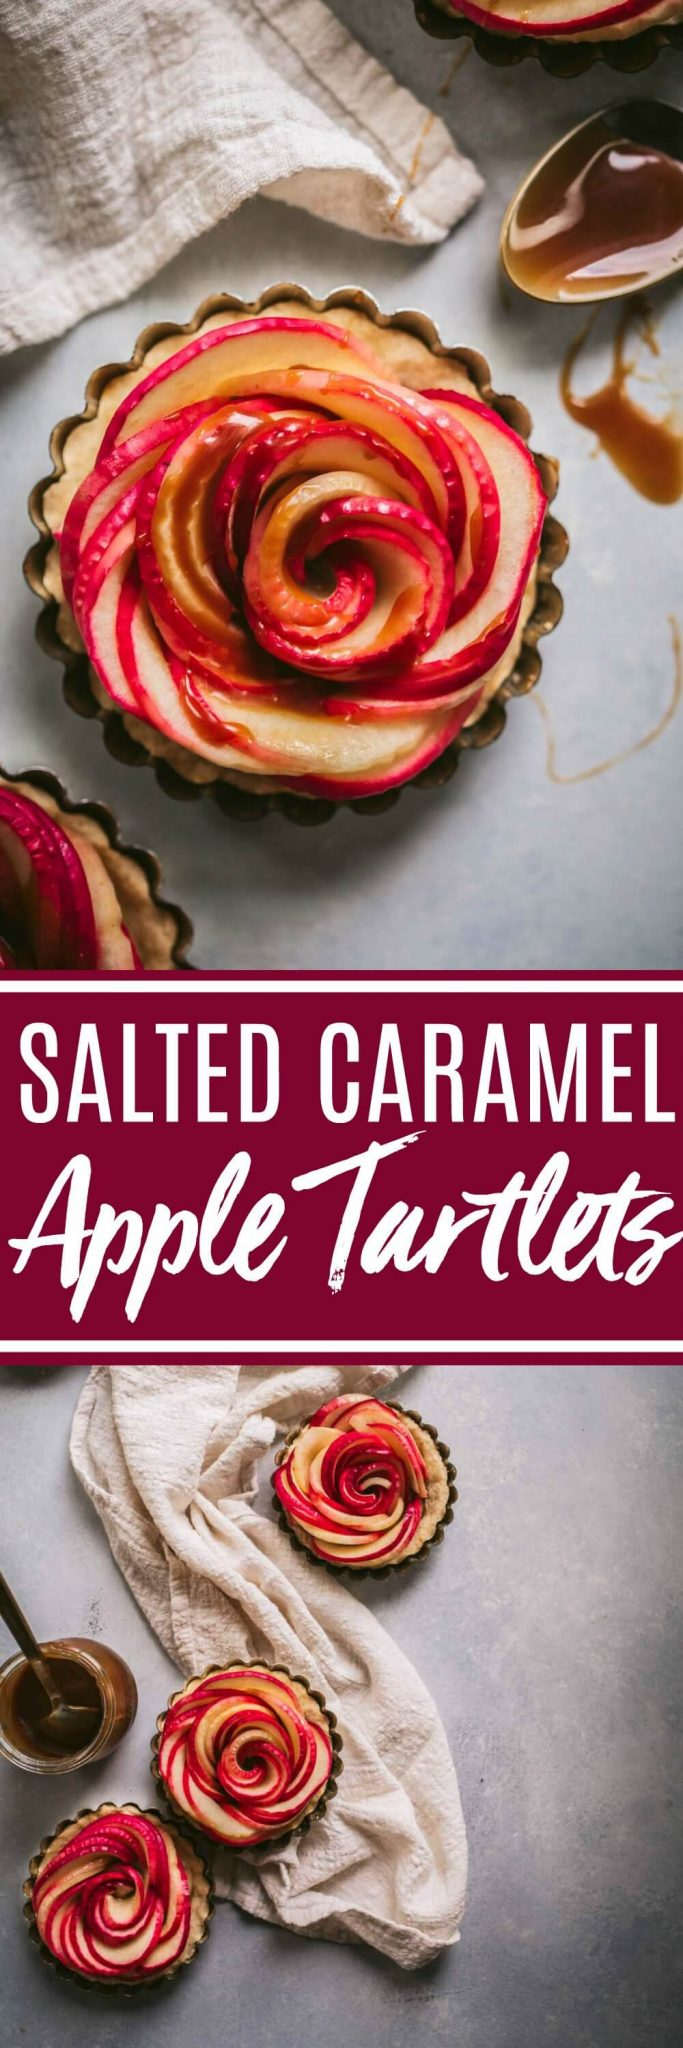 Rose Apple Tartlets with Salted Caramel are not only amazingly delicious, but beautiful too! Thin apple slices are arranged to look like a rose and drizzled with a yummy, spiked salted caramel sauce.